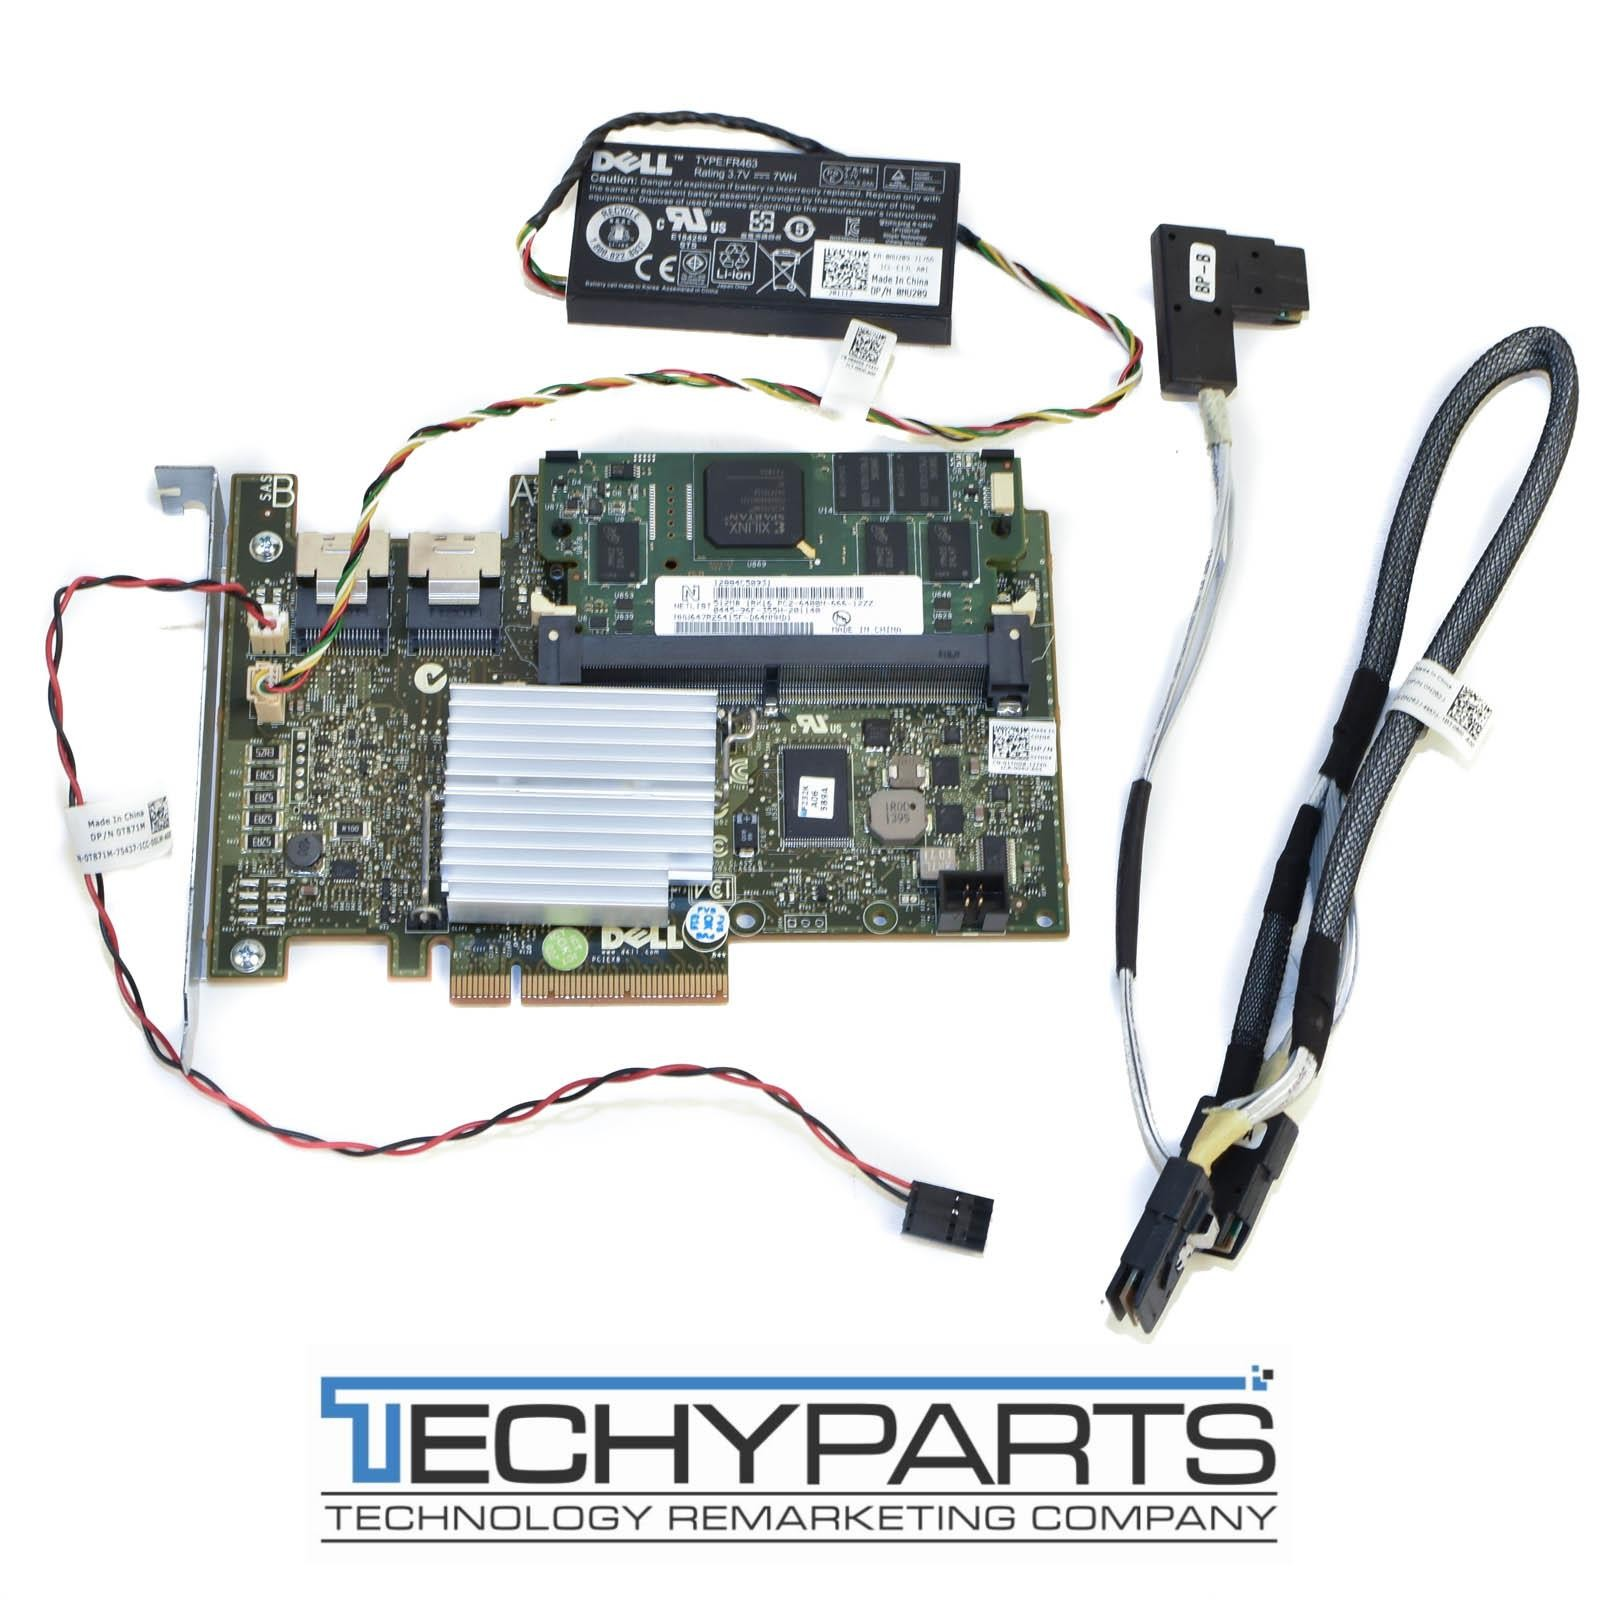 Dell PERC H700 SAS RAID Controller Kit w/Battery/Cables for